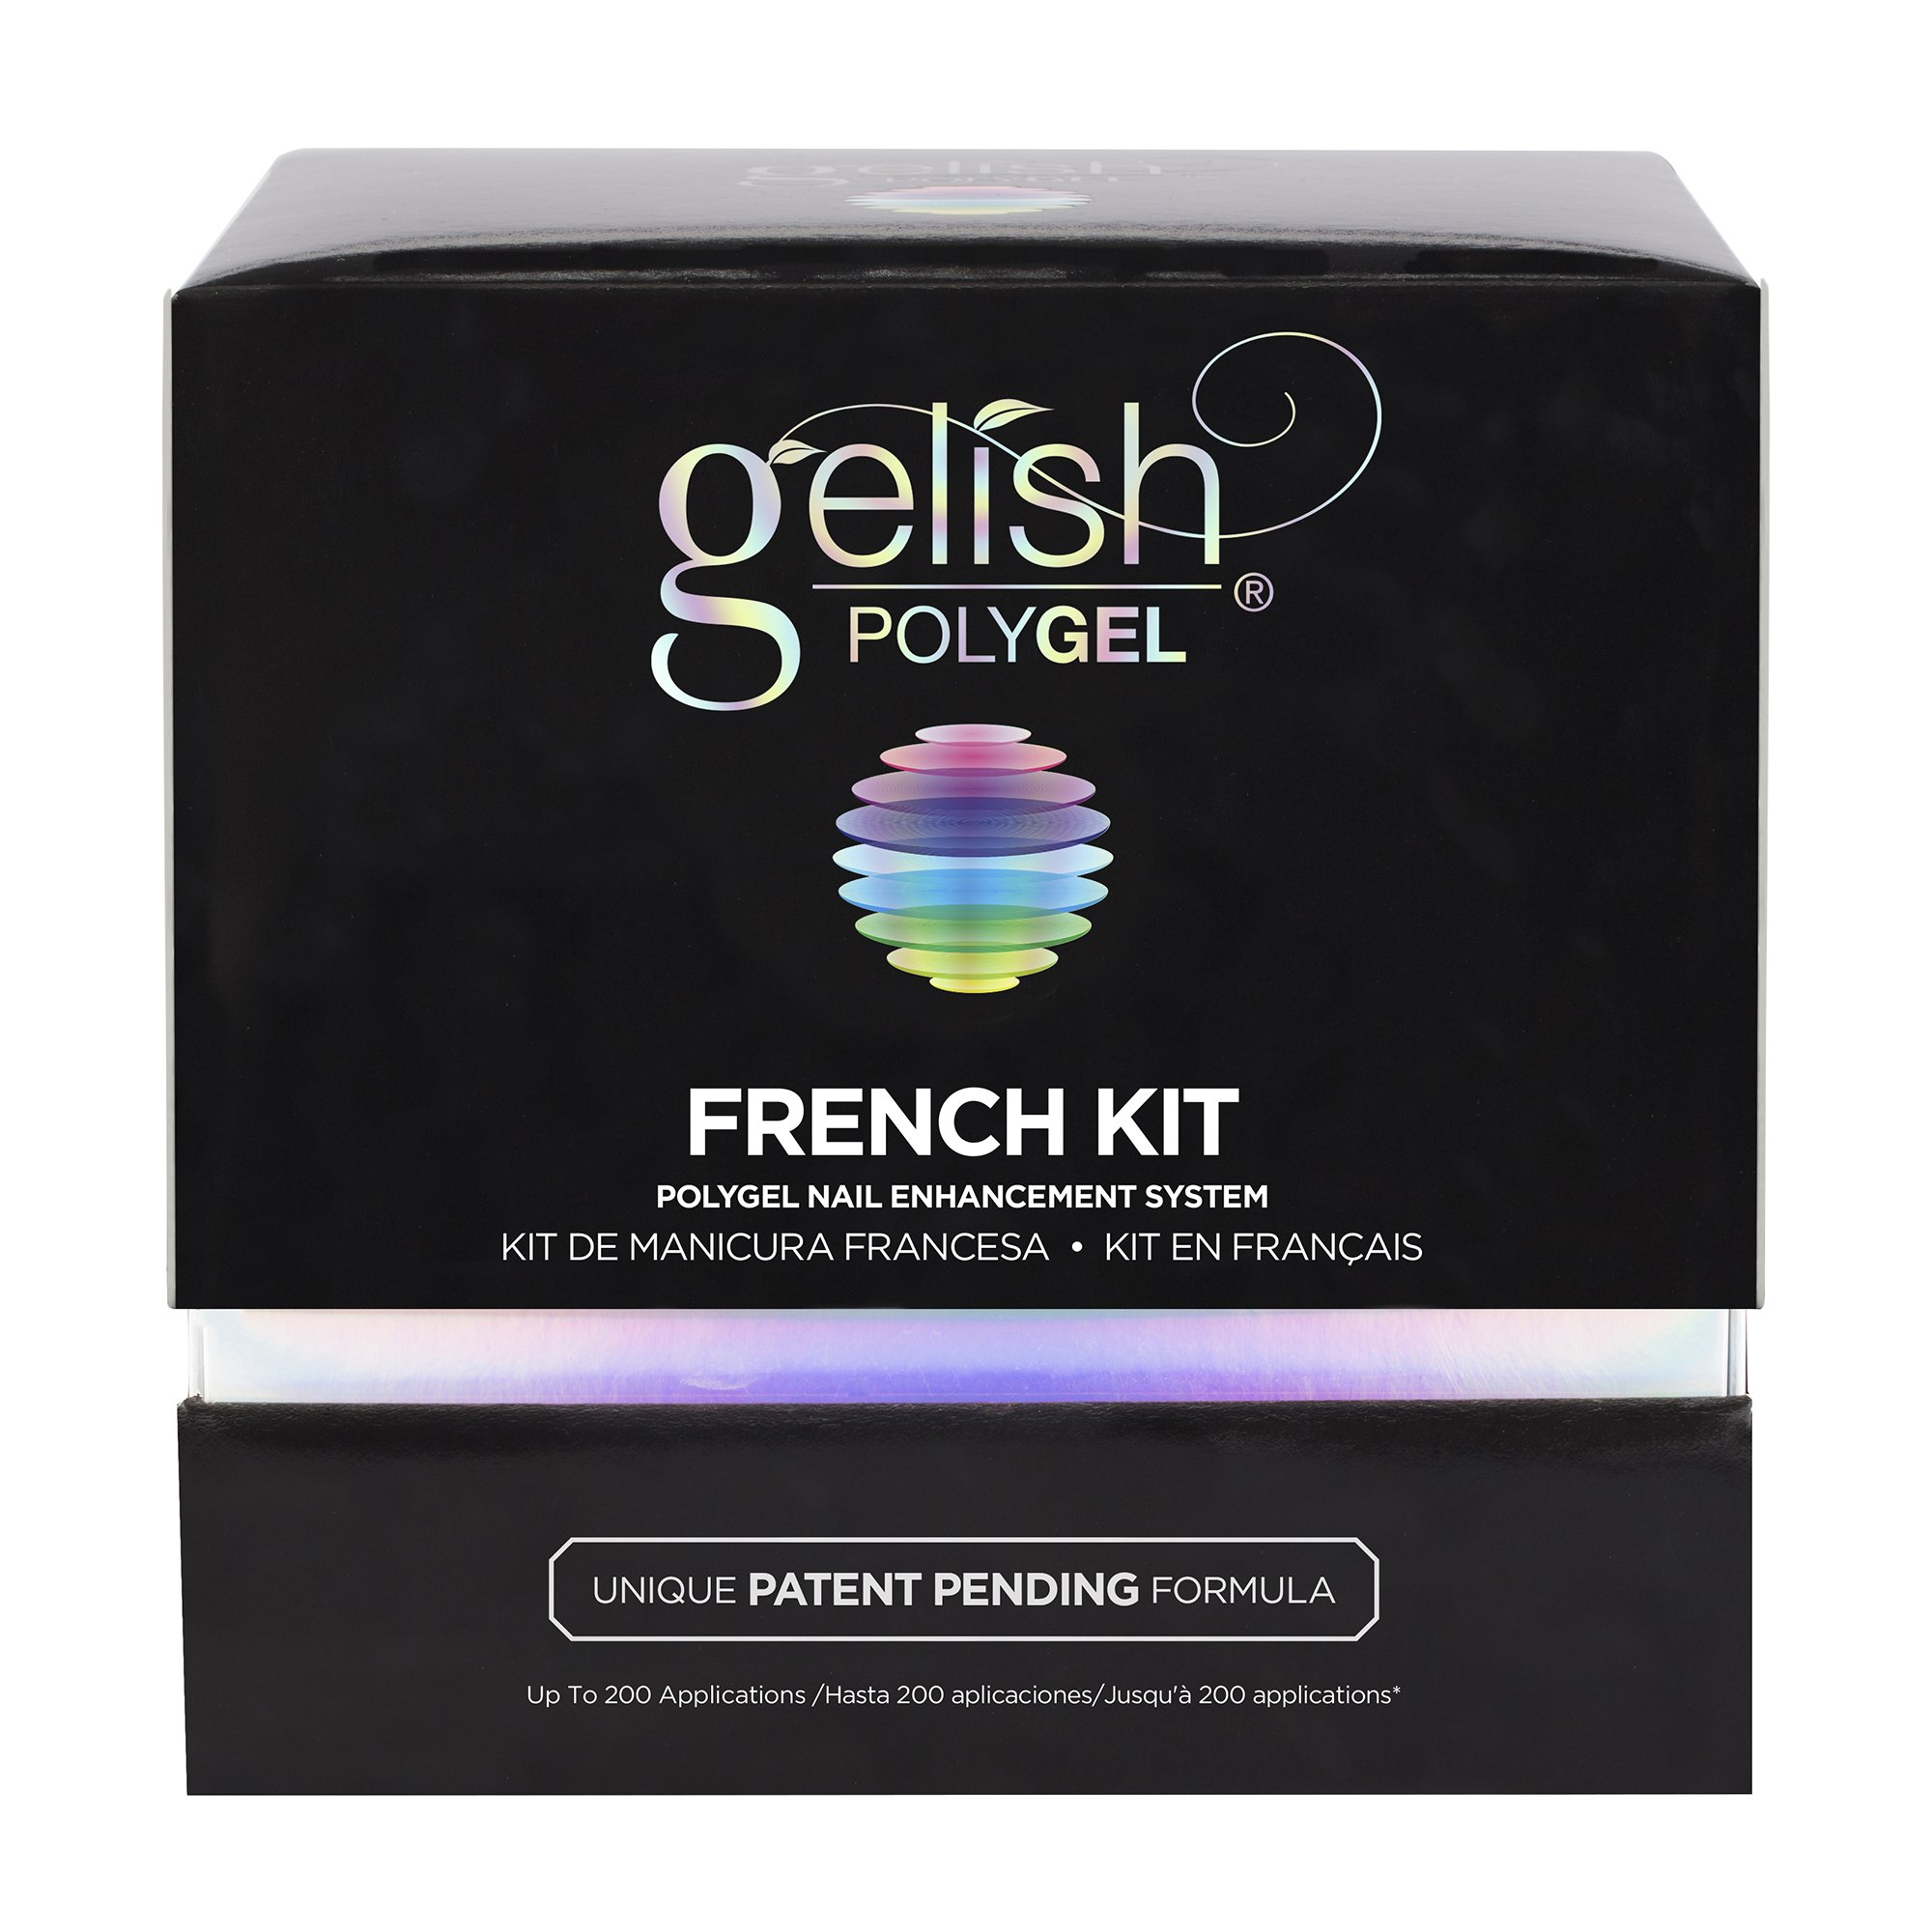 Gelish PolyGel Professional Nail Technician All-in-One Enhancement French Kit by Gelish (Image #9)